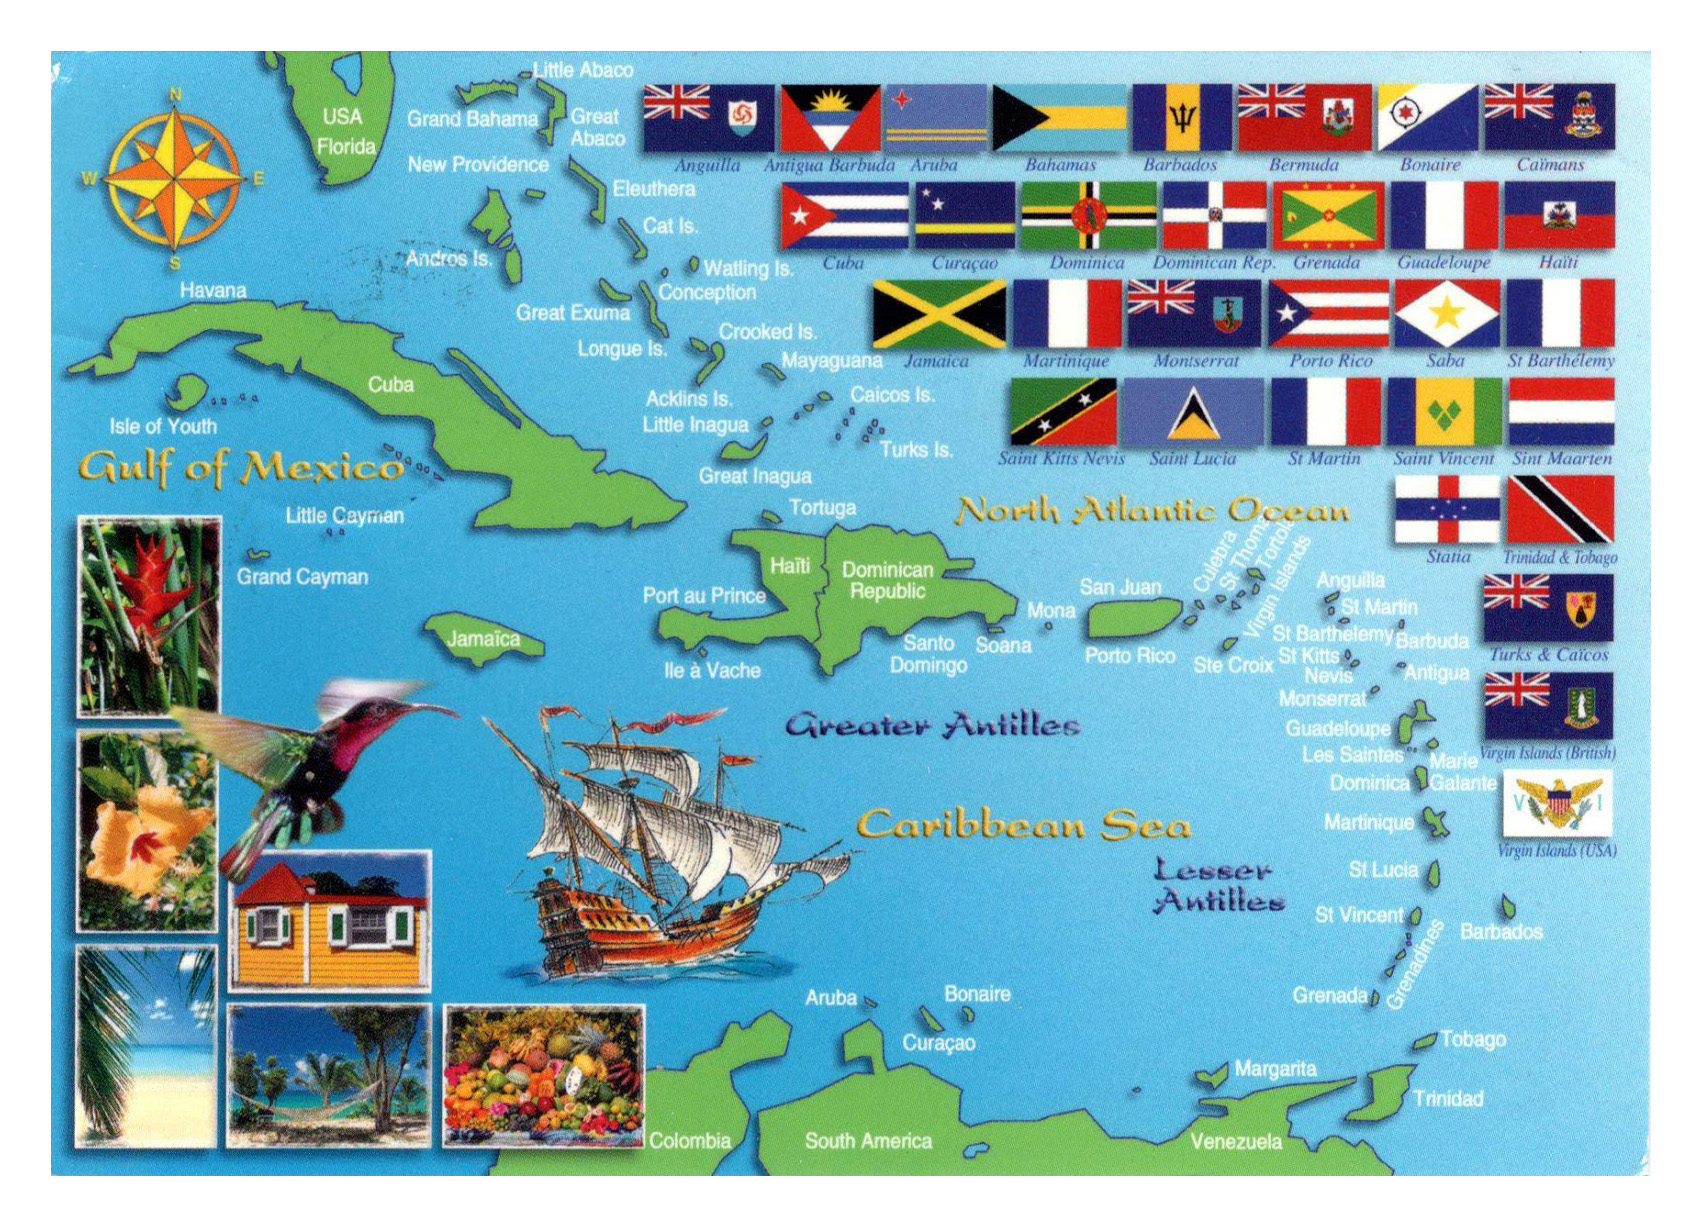 Aruba Map Geography Of Aruba Map Of Aruba Worldatlascom Where Is